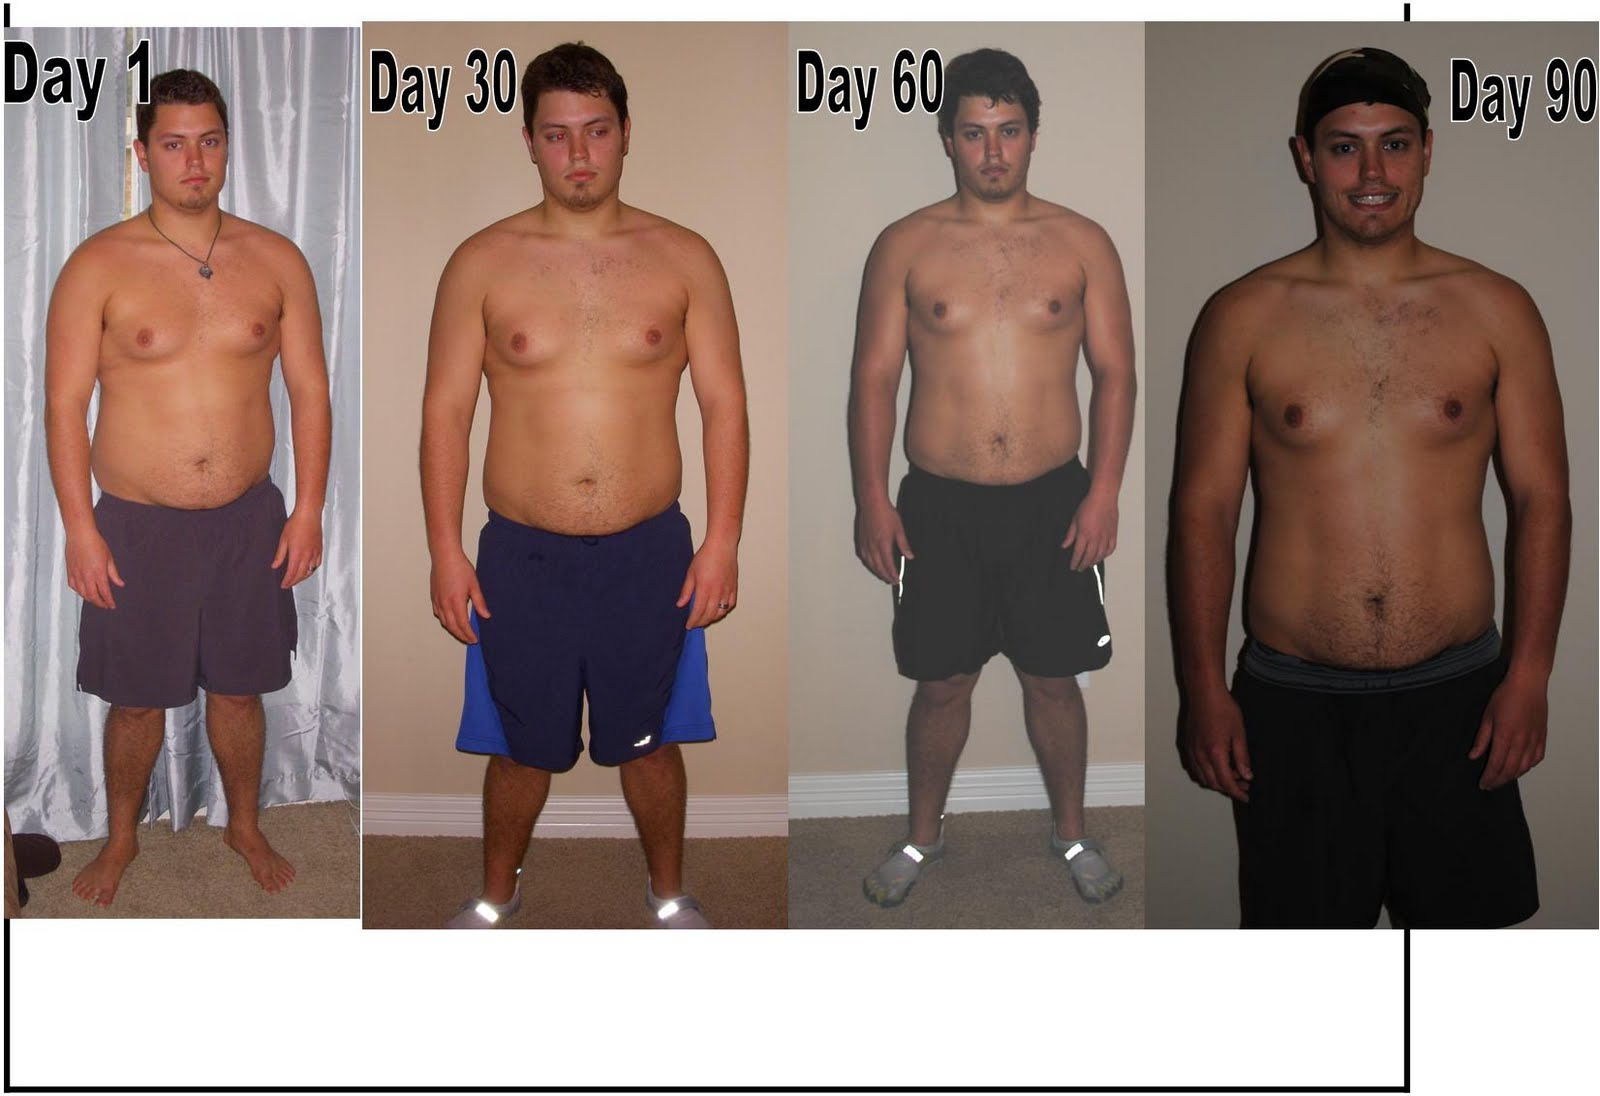 P90x Classic Workout Results